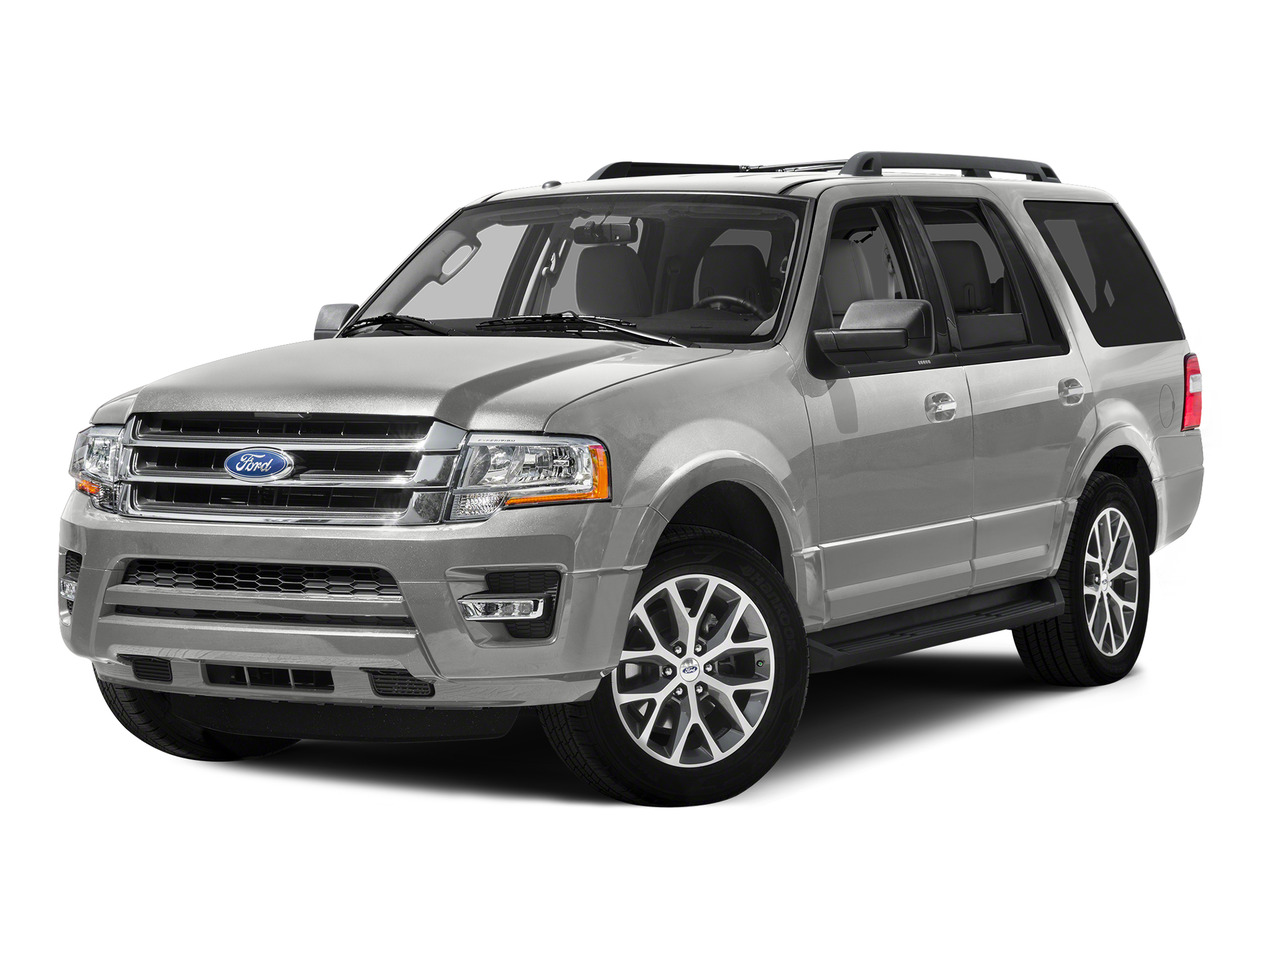 2015 Ford Expedition XLT SUV Slide